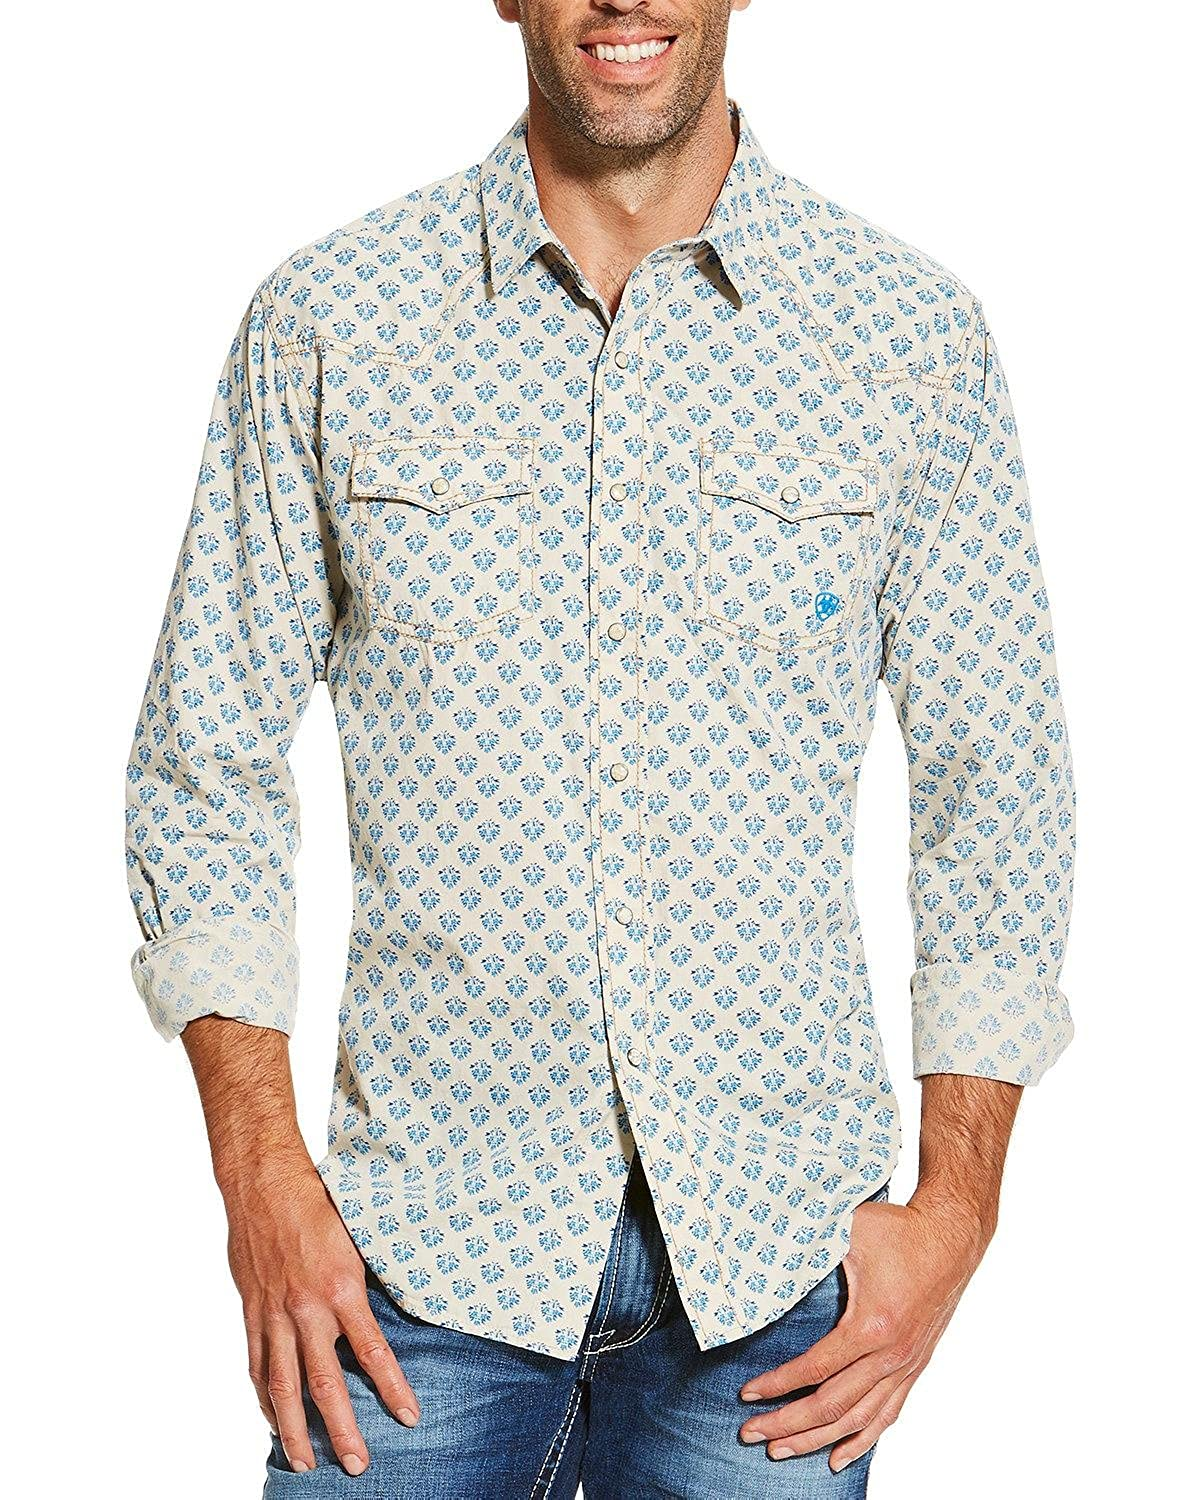 1960s Inspired Fashion: Recreate the Look Ariat Mens Chad Retro Shirt $54.95 AT vintagedancer.com